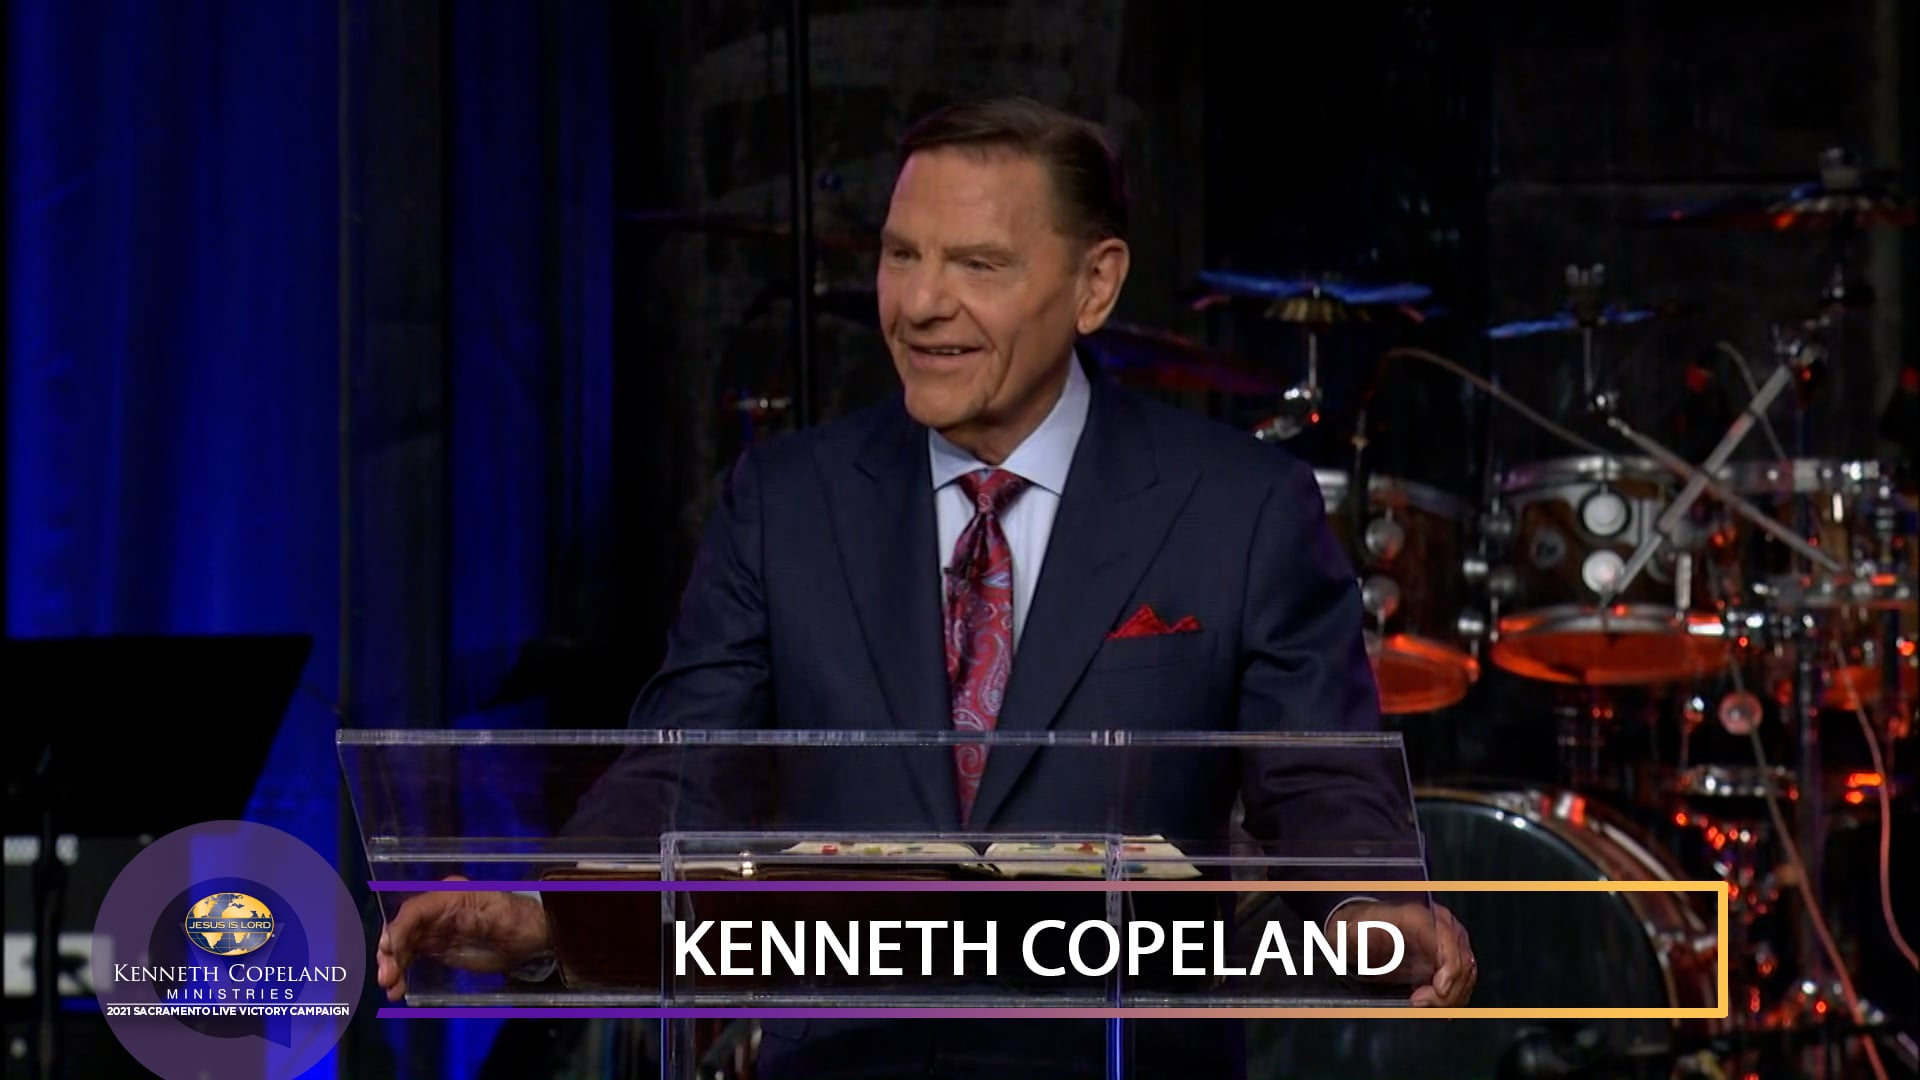 At the 2021 Sacramento Victory Campaign, Kenneth Copeland shares insight from the story of the rich, young ruler in Mark 10. This man was given a similar opportunity as the other apostles—to go work for Jesus! He left there sad and hadn't lost a thing. Never miss an occasion to give at the direction of God!